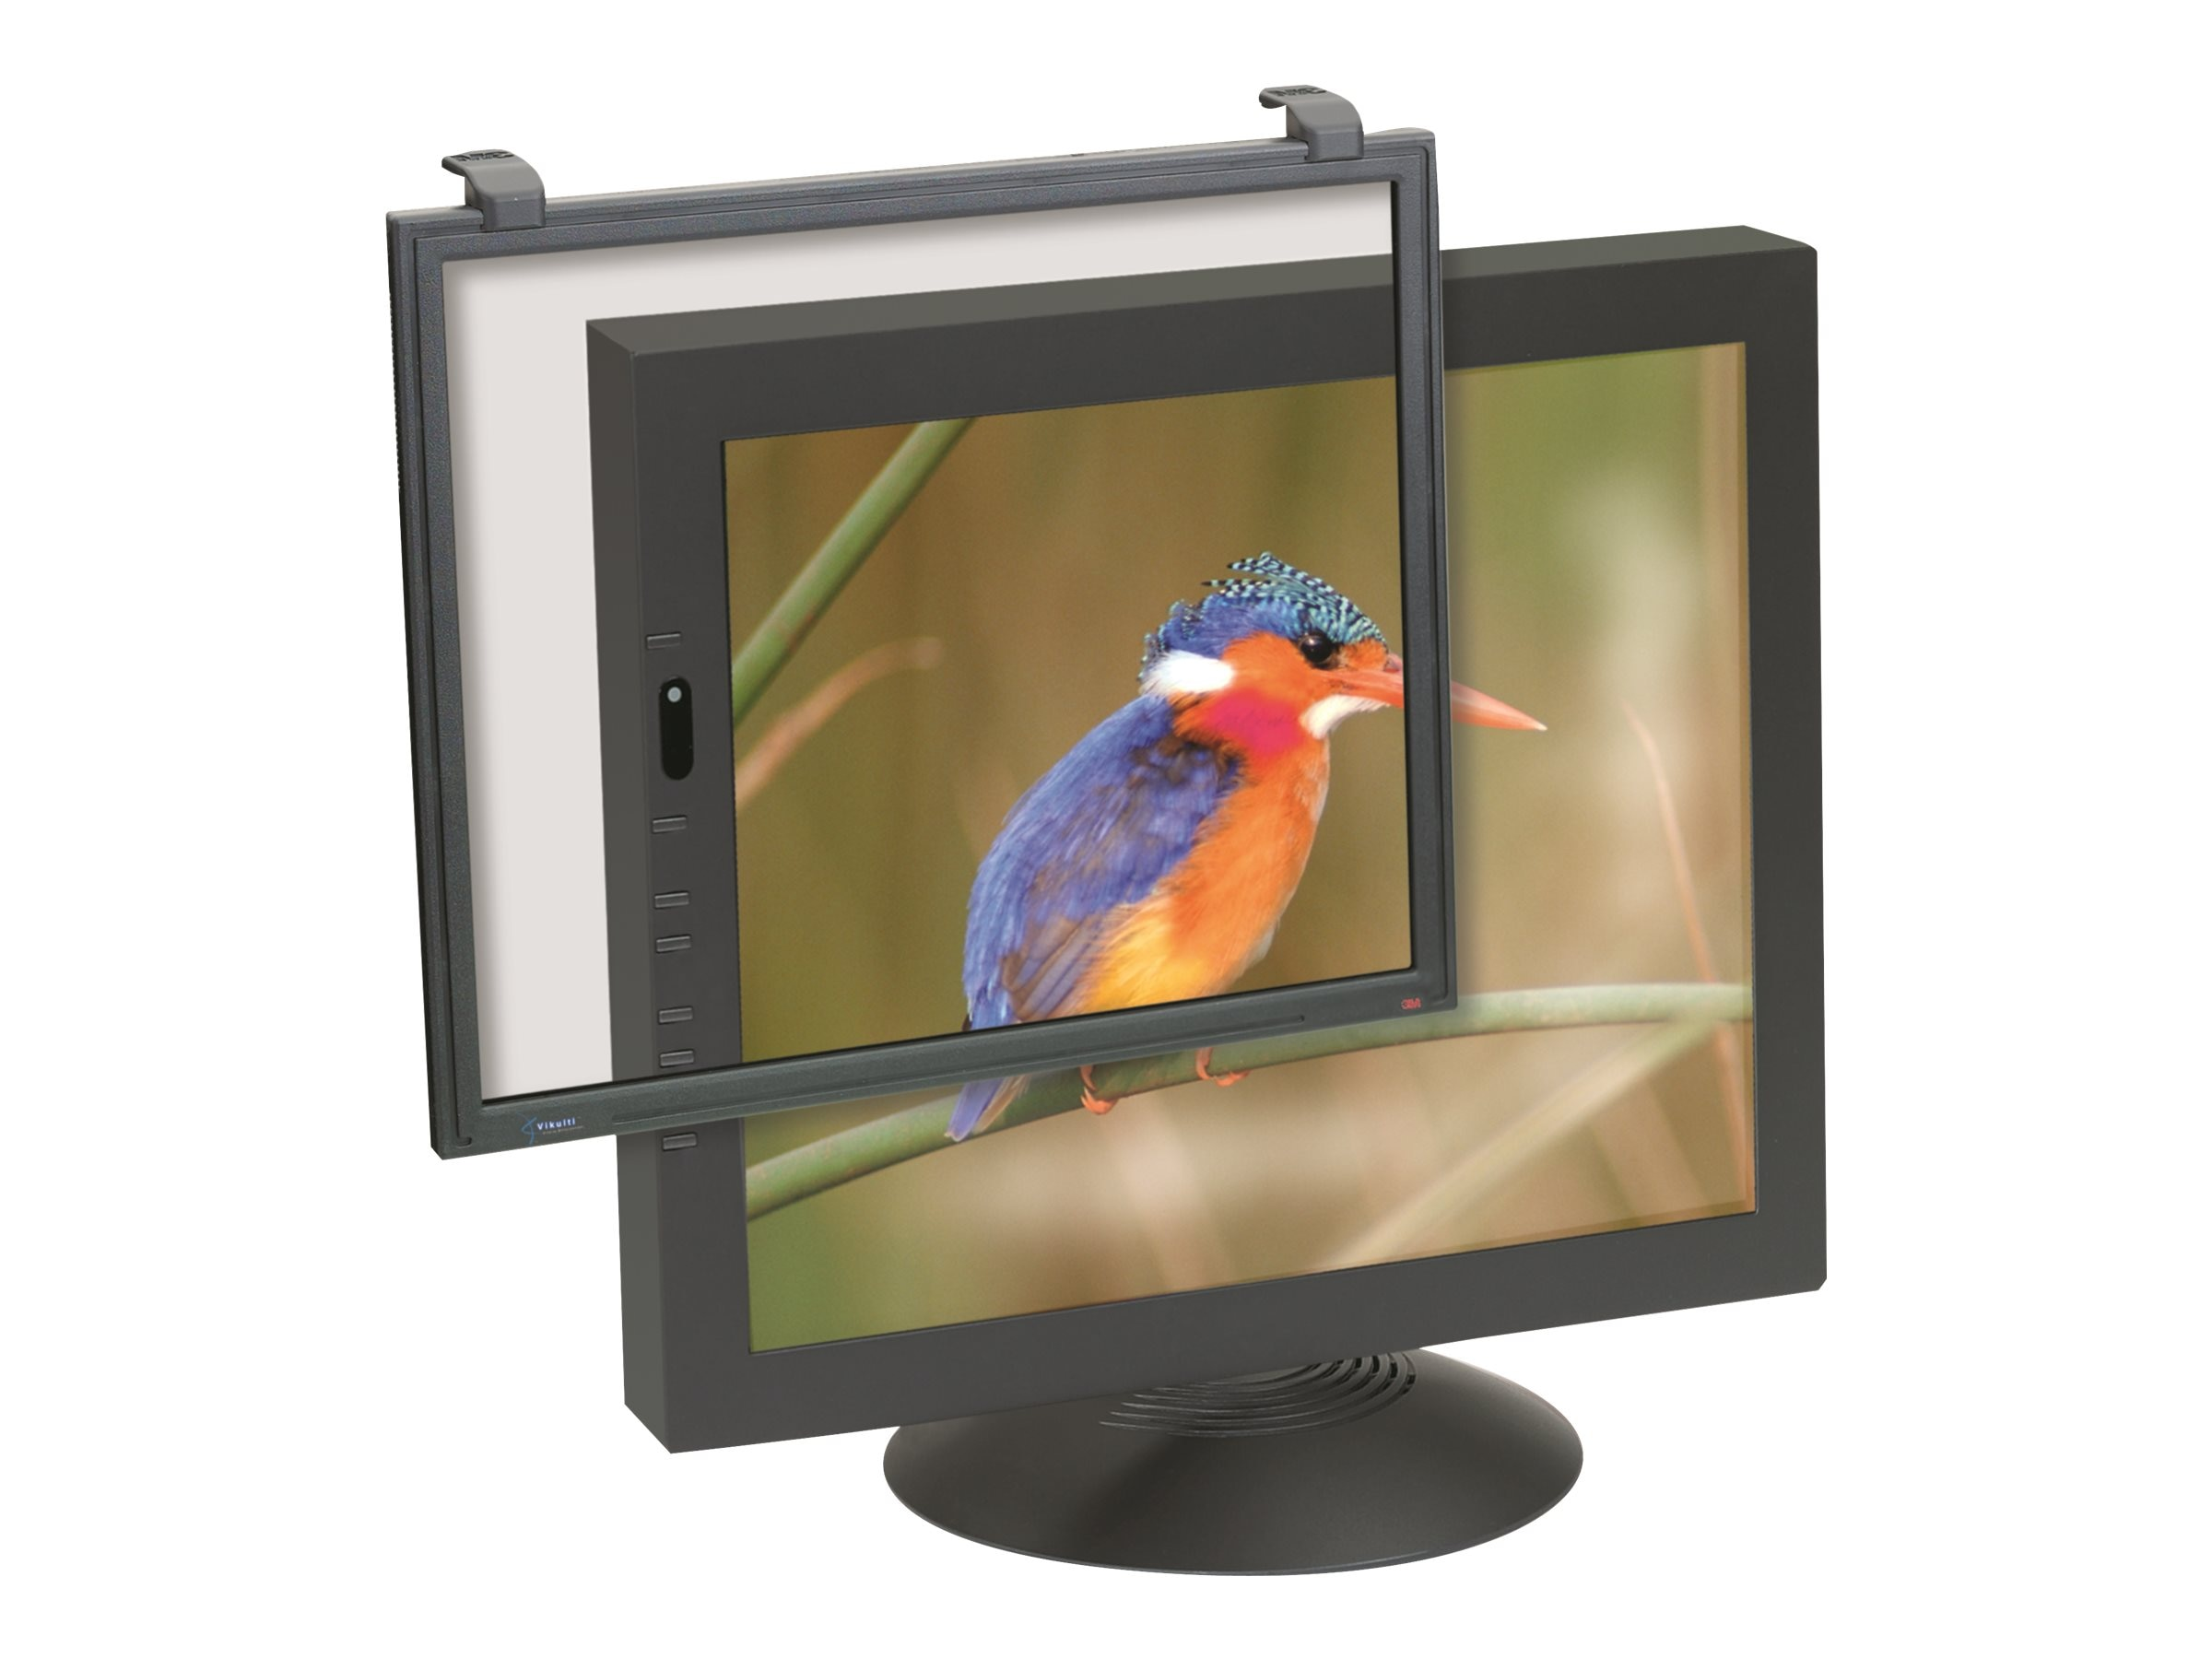 3M Executive Anti-Glare Glass Framed Filter for 17-18 5:4 Displays